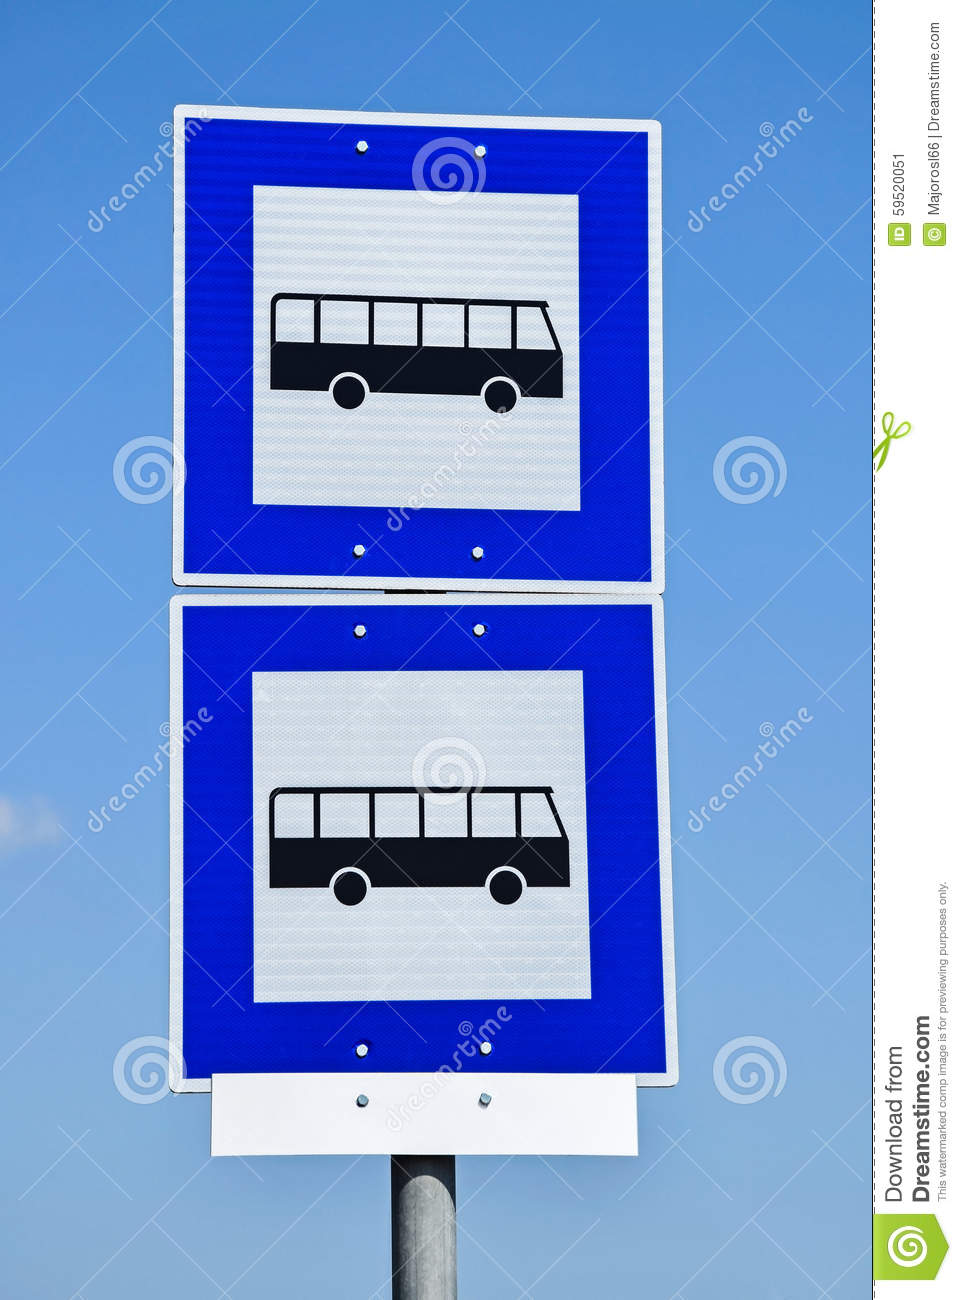 Bus stop traffic signs